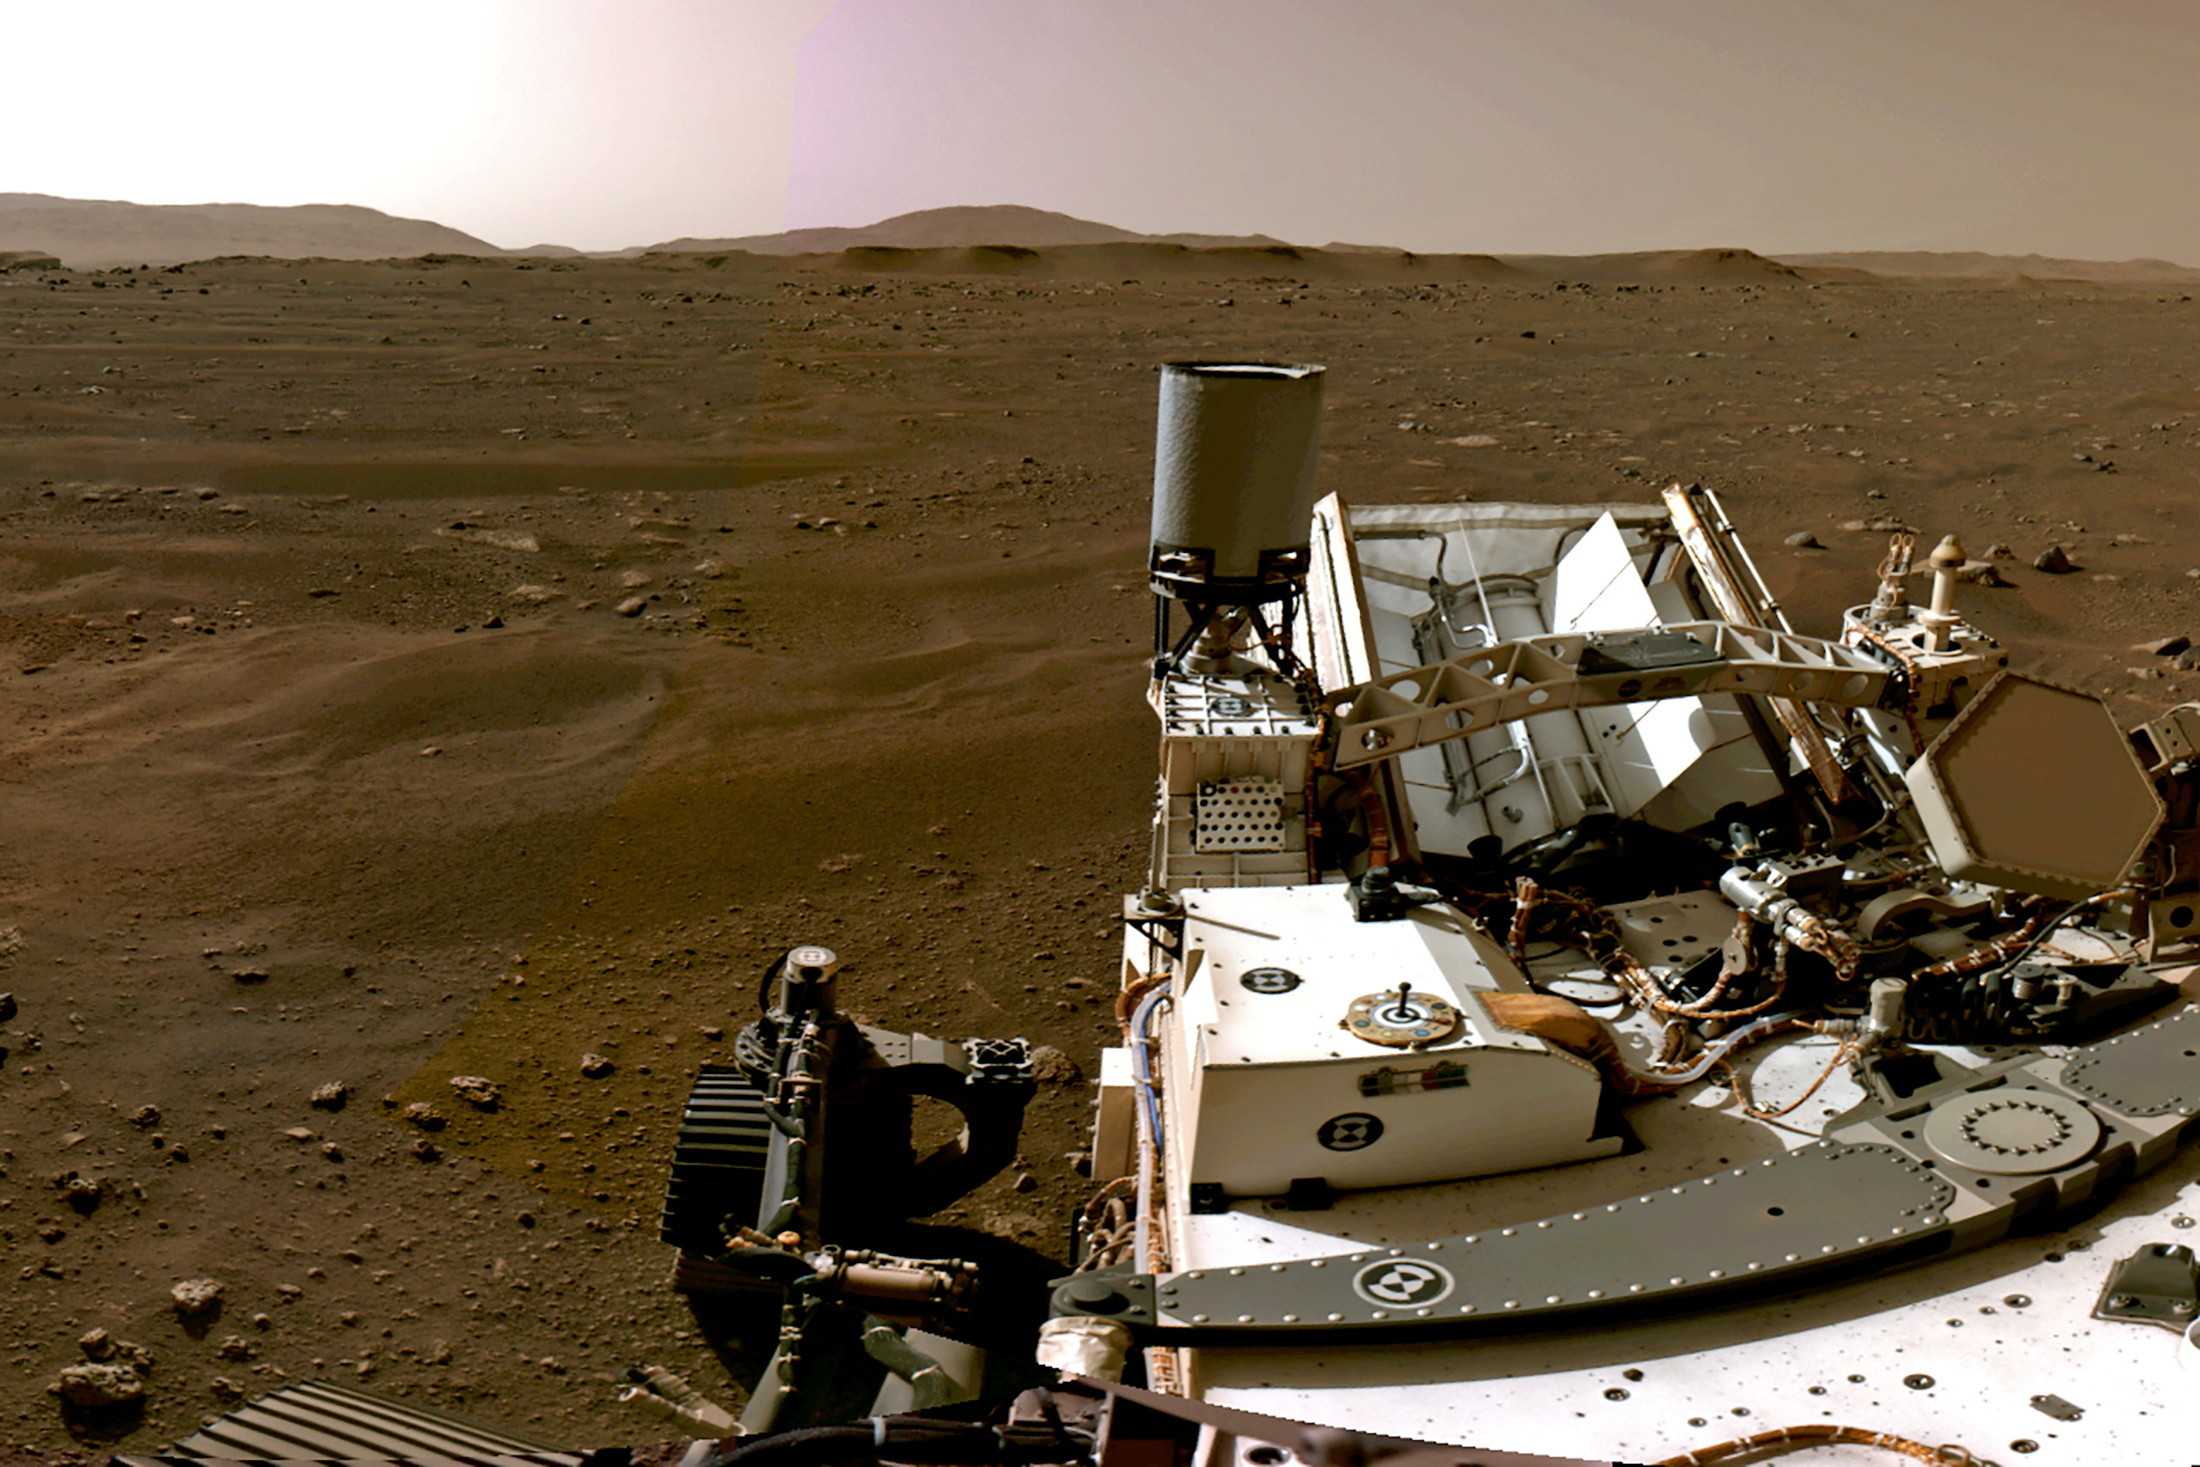 A picture of NASA's Perseverance Mars Rover on the surface of the red planet.